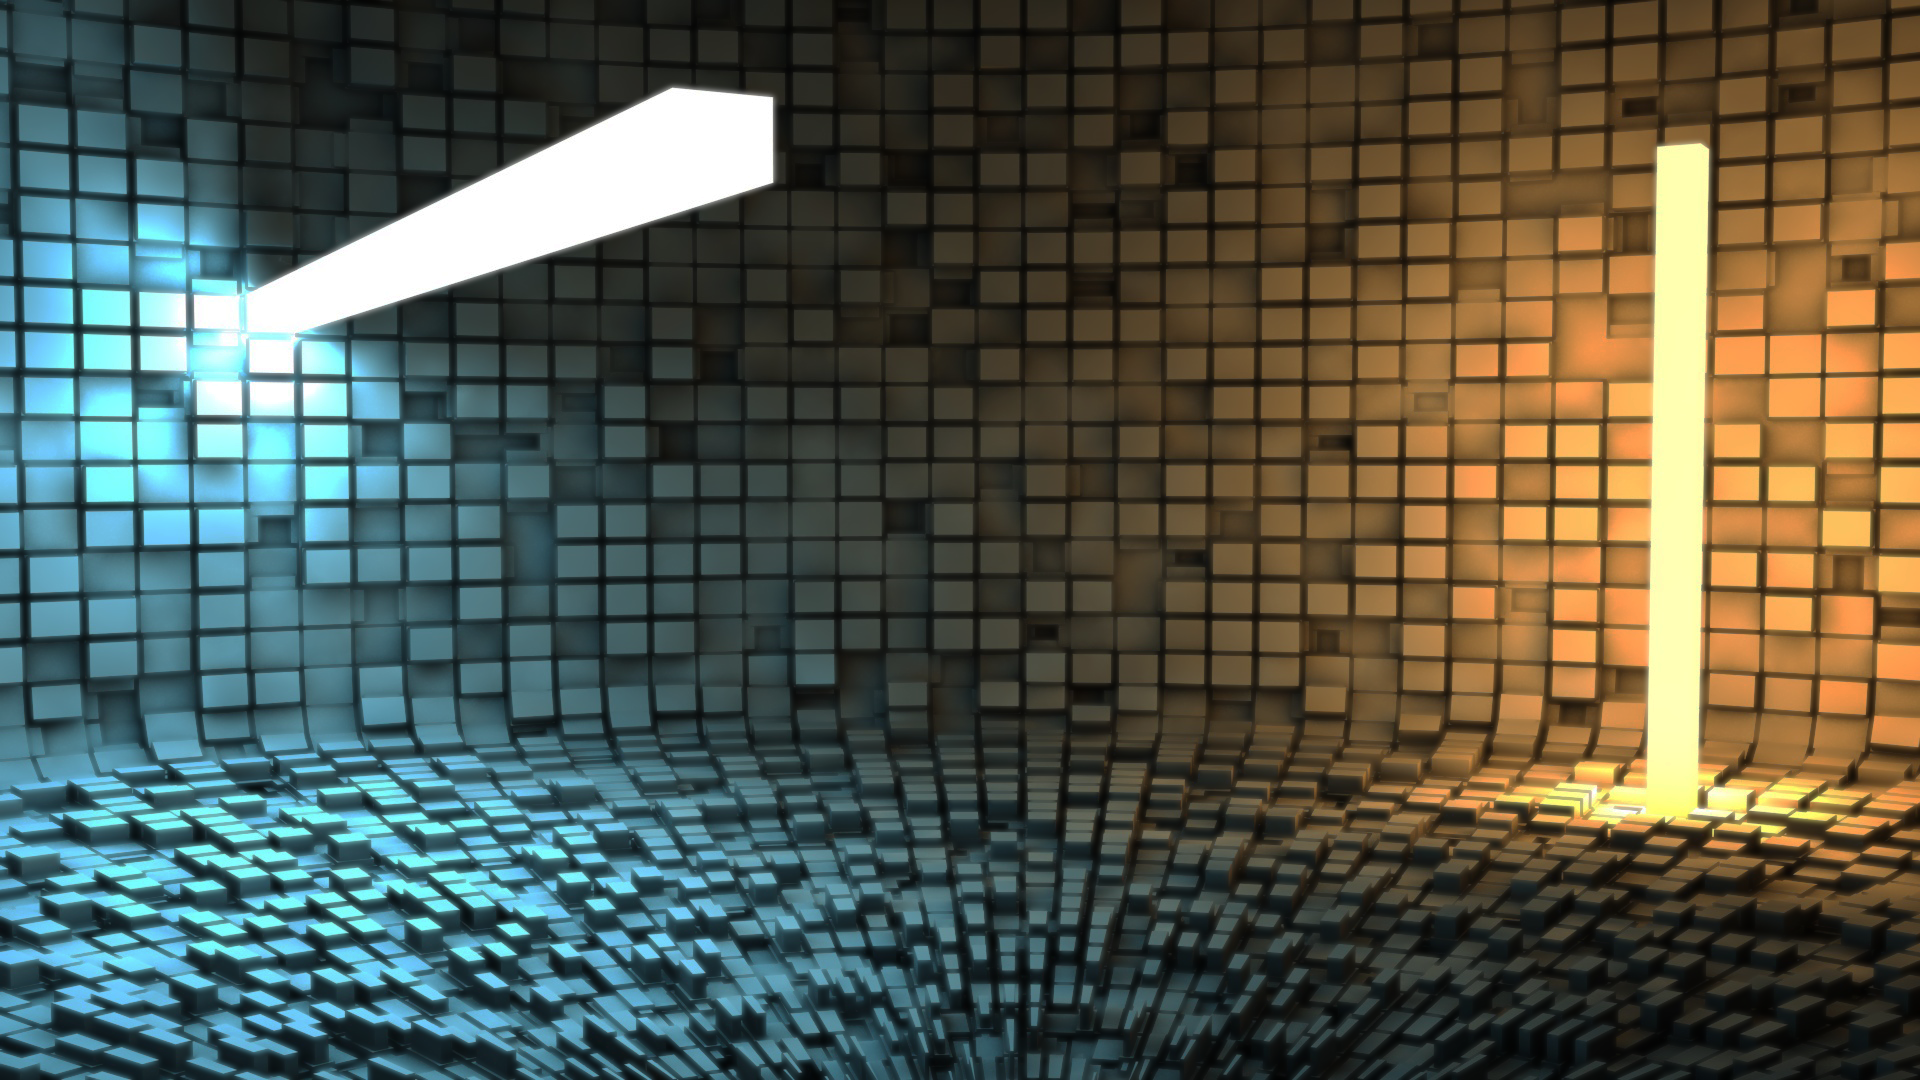 20 Tech tastic 3D Wallpapers To Rock Your Paltry Desktop   SolidSmack 1920x1080